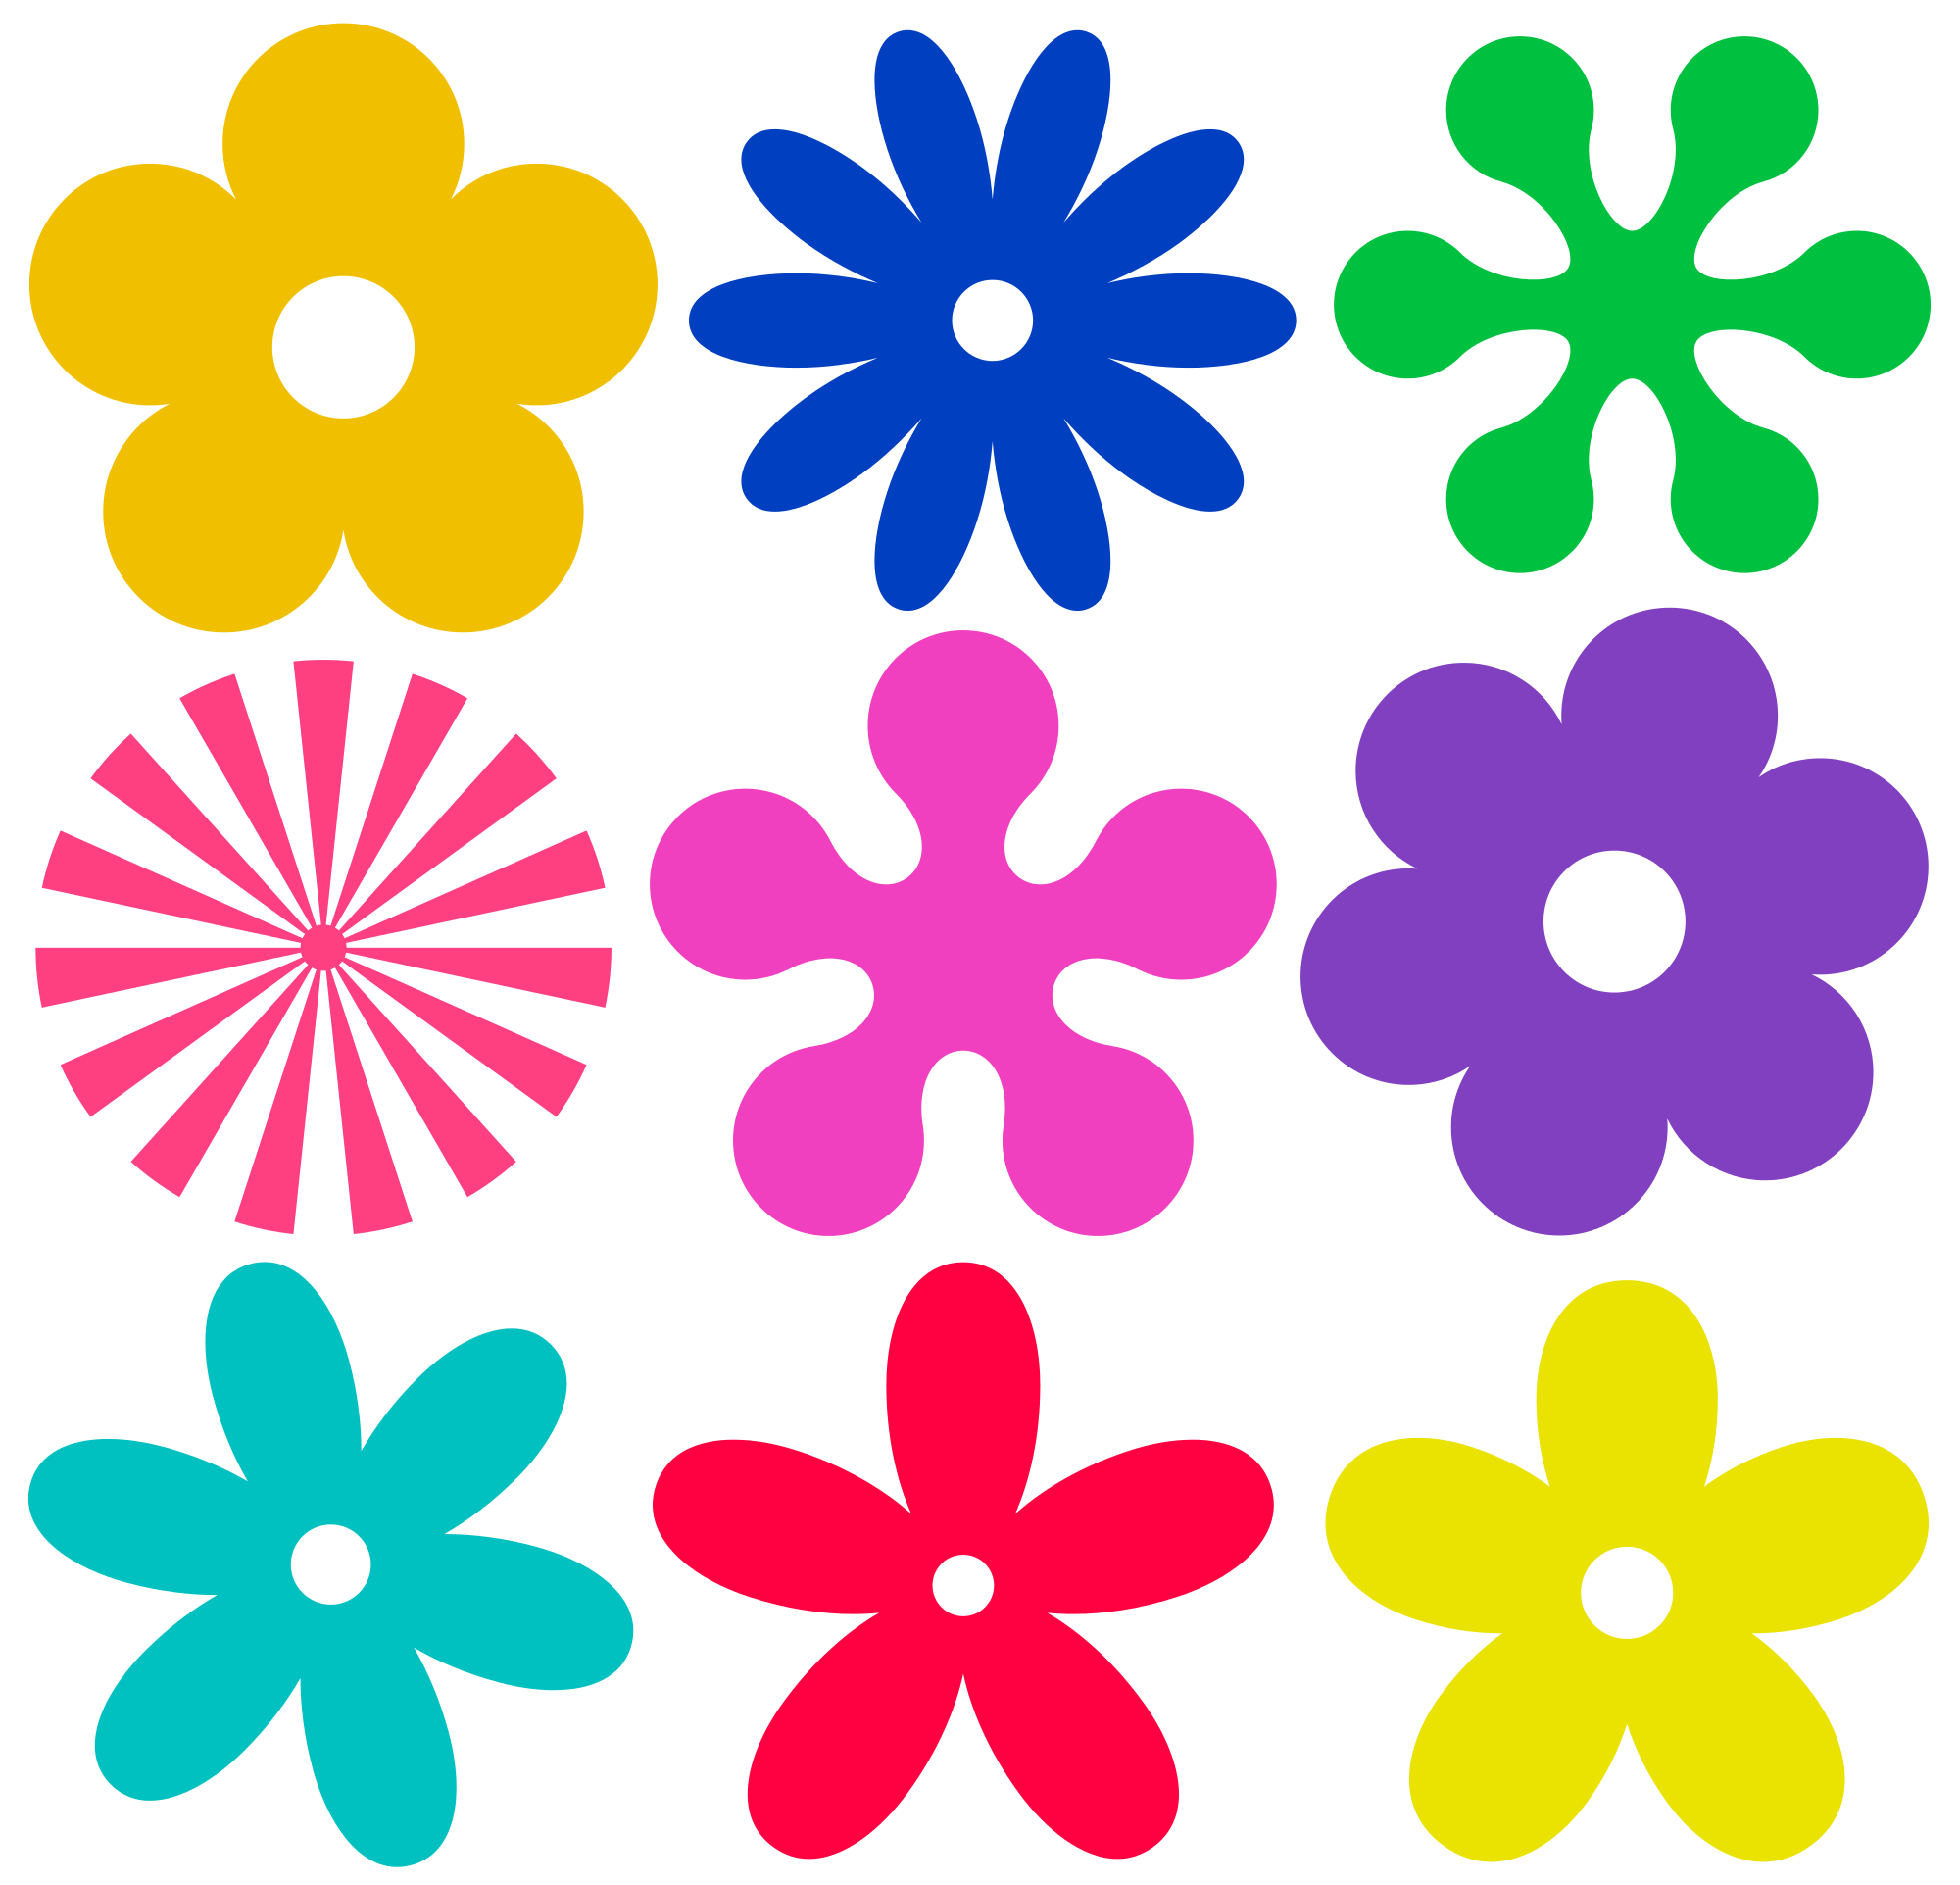 Tiny flower clipart banner freeuse library File:Retro-flower-ornaments.svg - Wikimedia Commons banner freeuse library